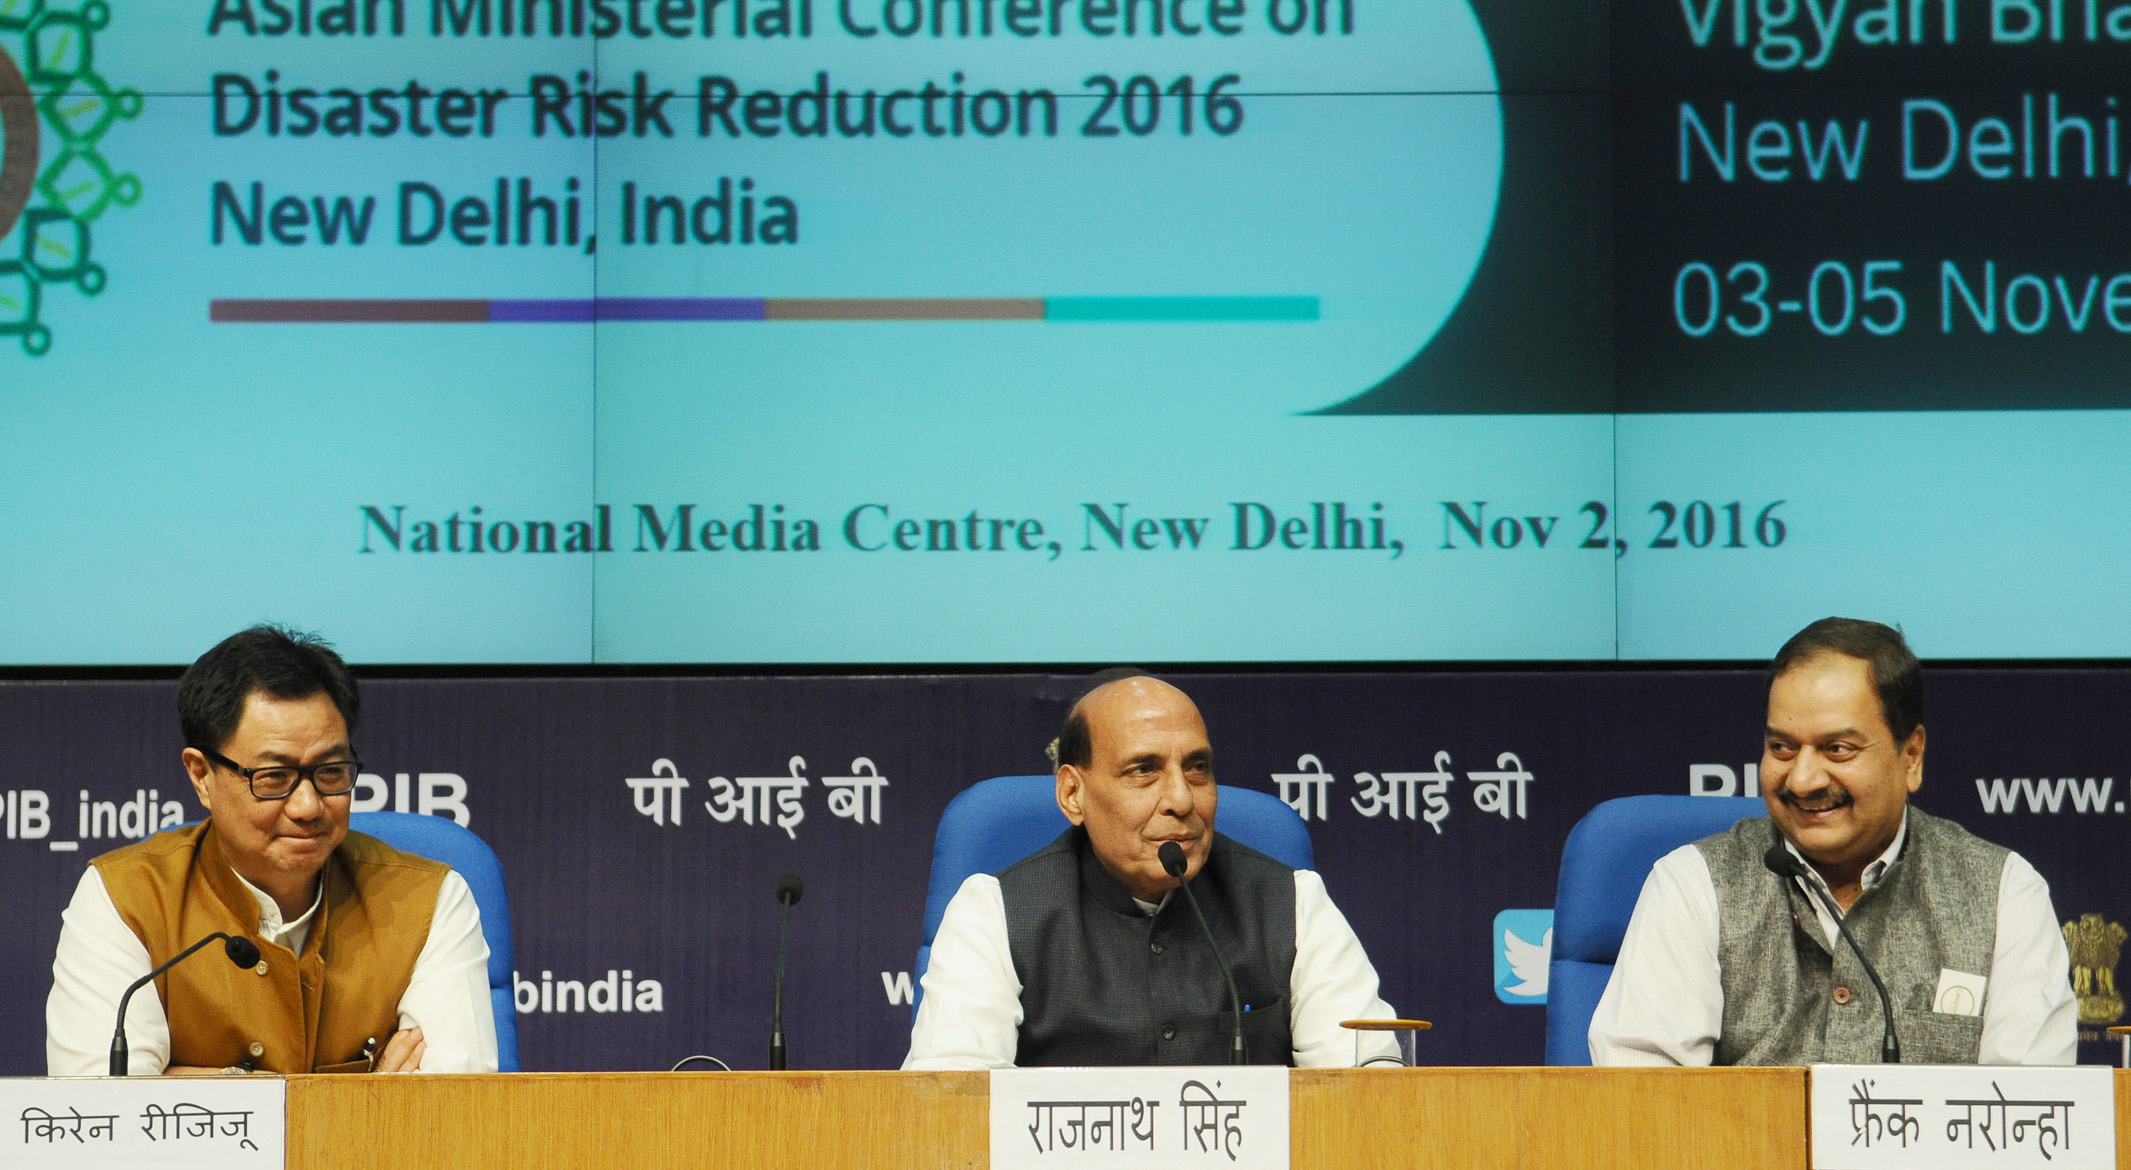 The Union Home Minister, Shri Rajnath Singh addressing a press conference on Asian Ministerial Conference for Disaster Risk Reduction (AMCDRR), 2016, in New Delhi on November 02, 2016.  The Minister of State for Home Affairs, Shri Kiren Rijiju and the Director General (M&C), Press Information Bureau, Shri A.P. Frank Noronha are also seen.